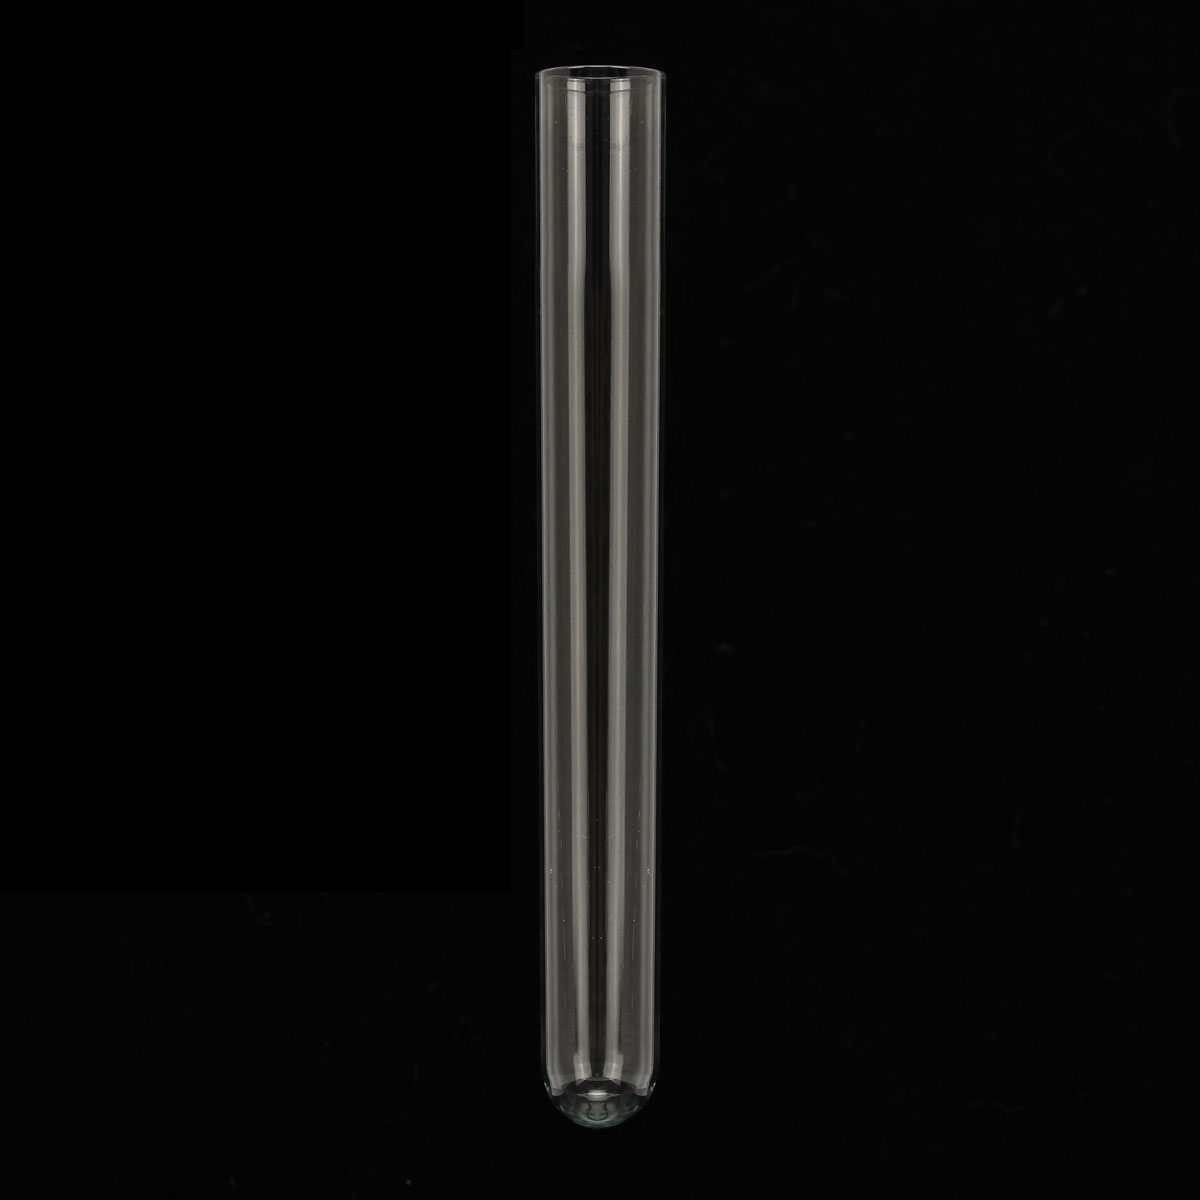 5pcs Pyrex Glass Blowing Tubes Laboratory Test Tube Diameter 25mm Length 200mm